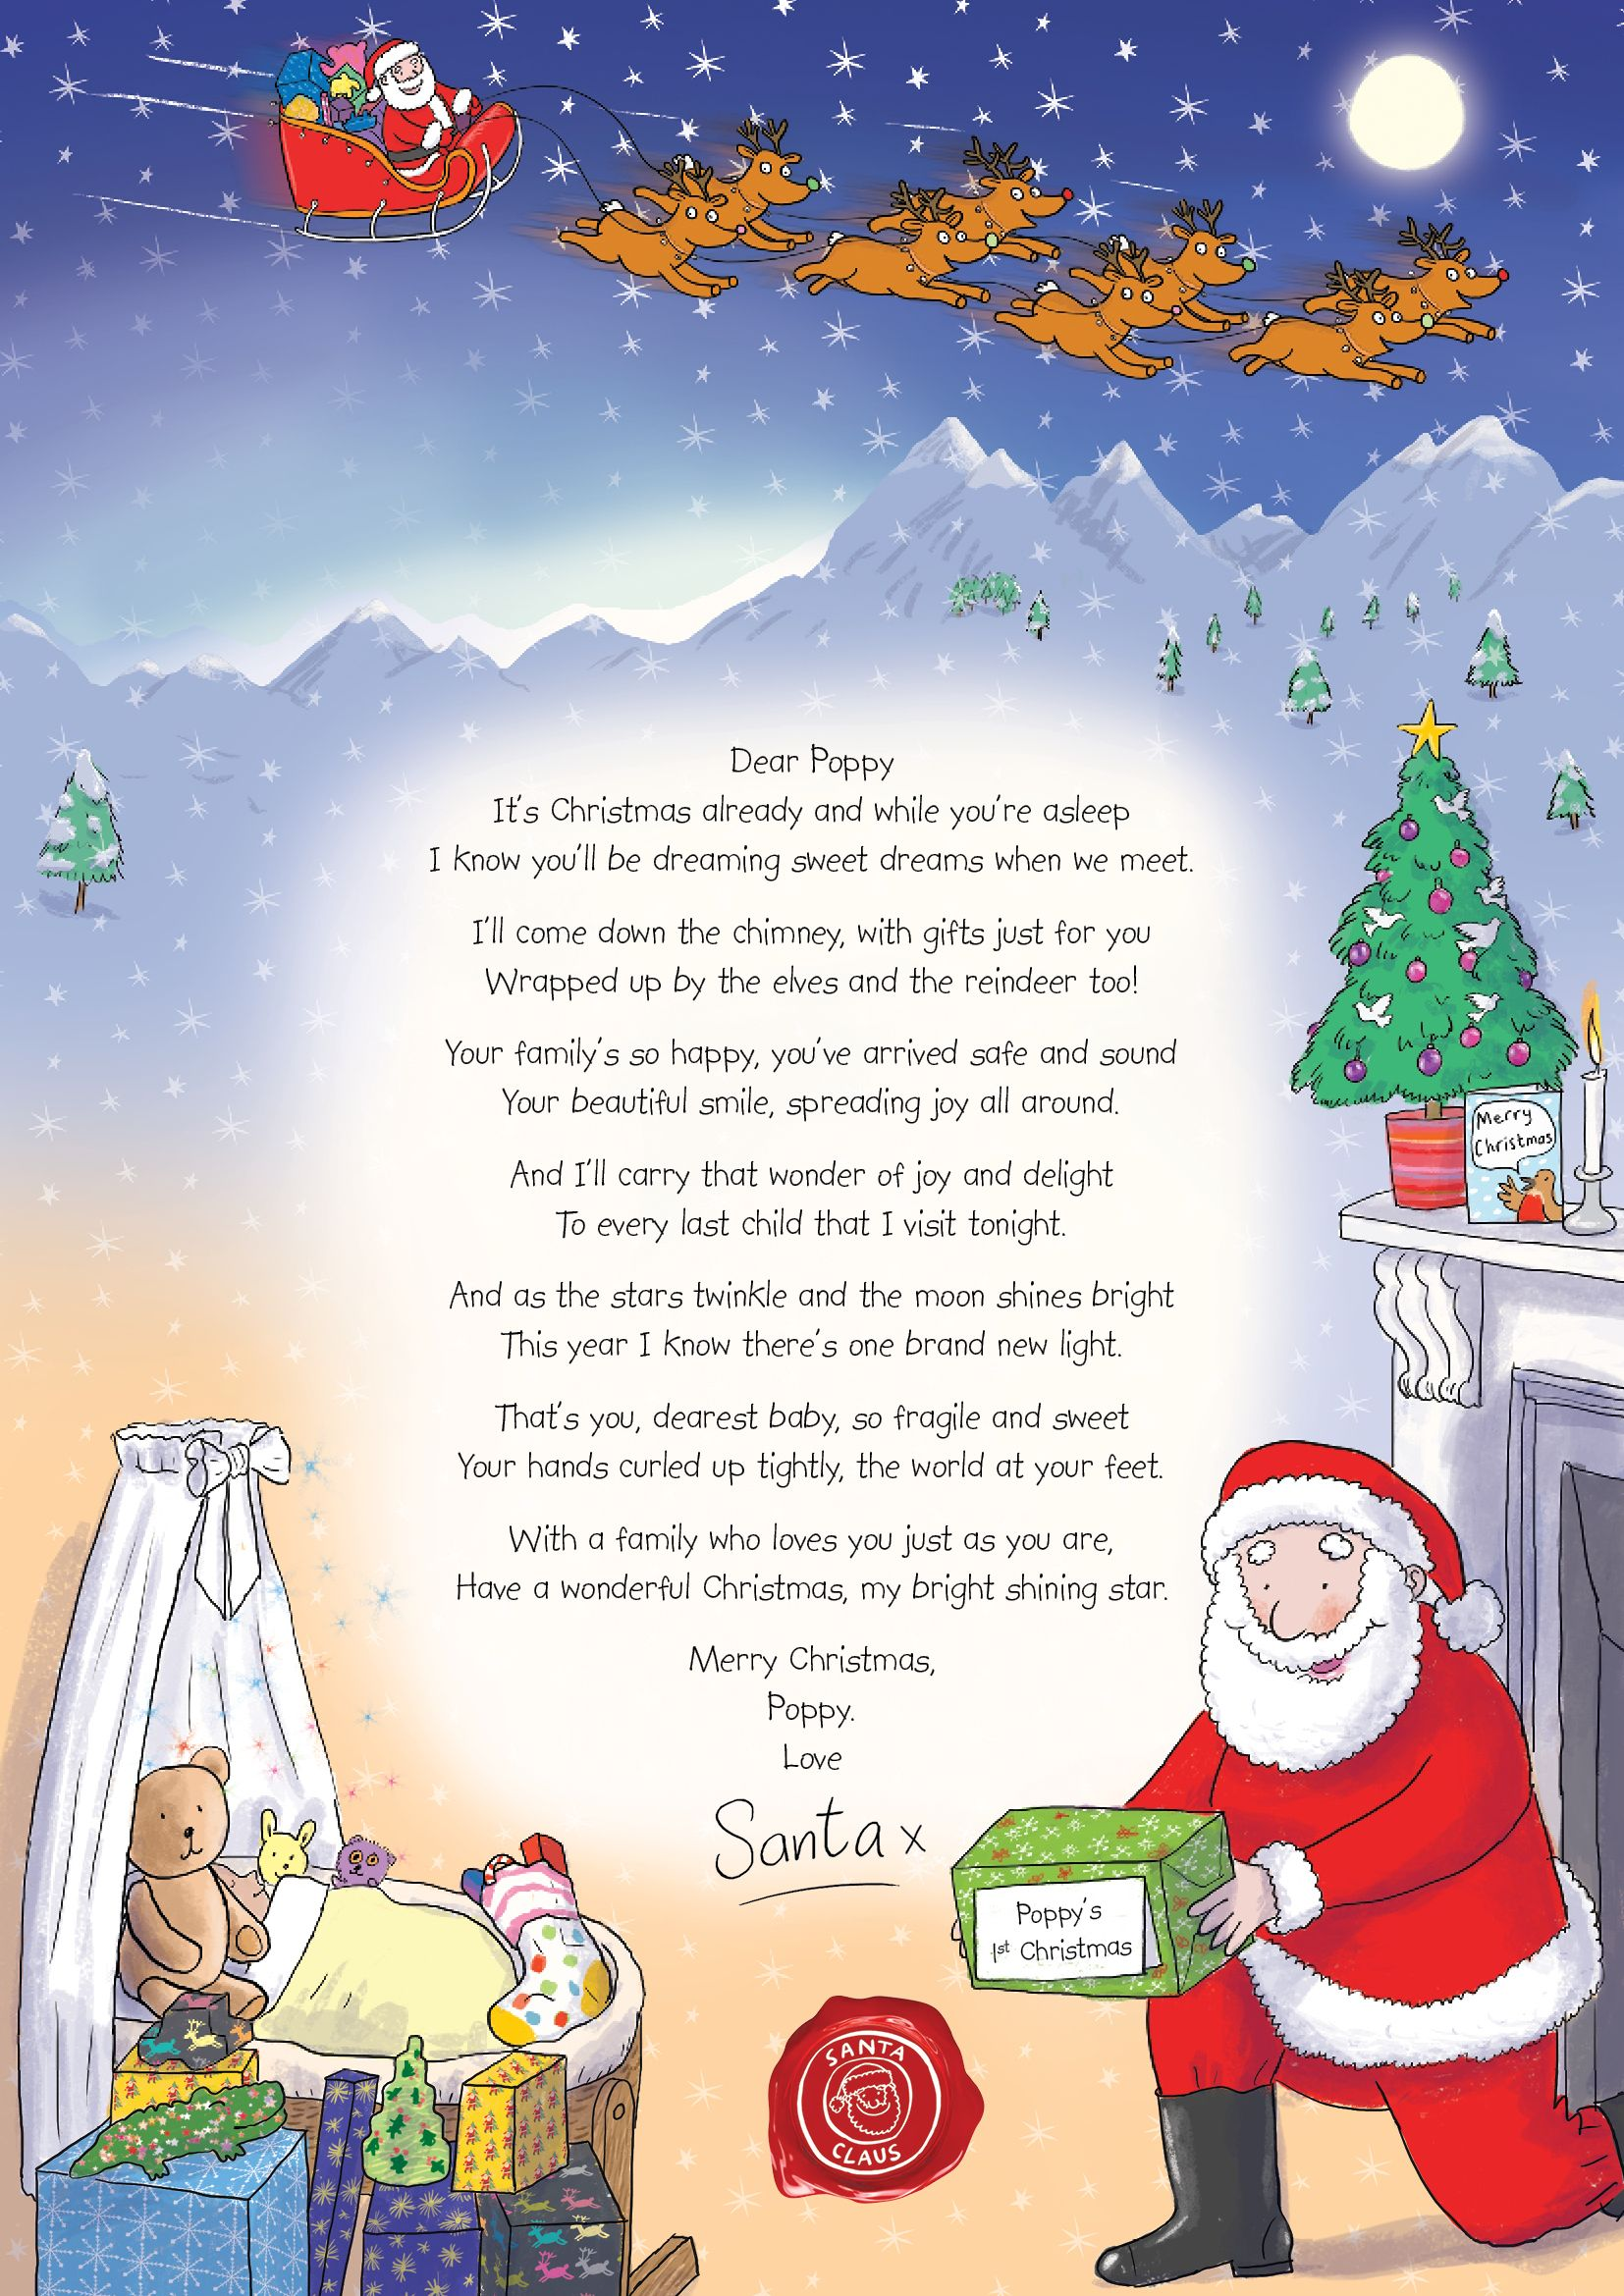 Nspcc letter from santa santa can even write a special letter to nspcc letter from santa santa can even write a special letter to celebrate spiritdancerdesigns